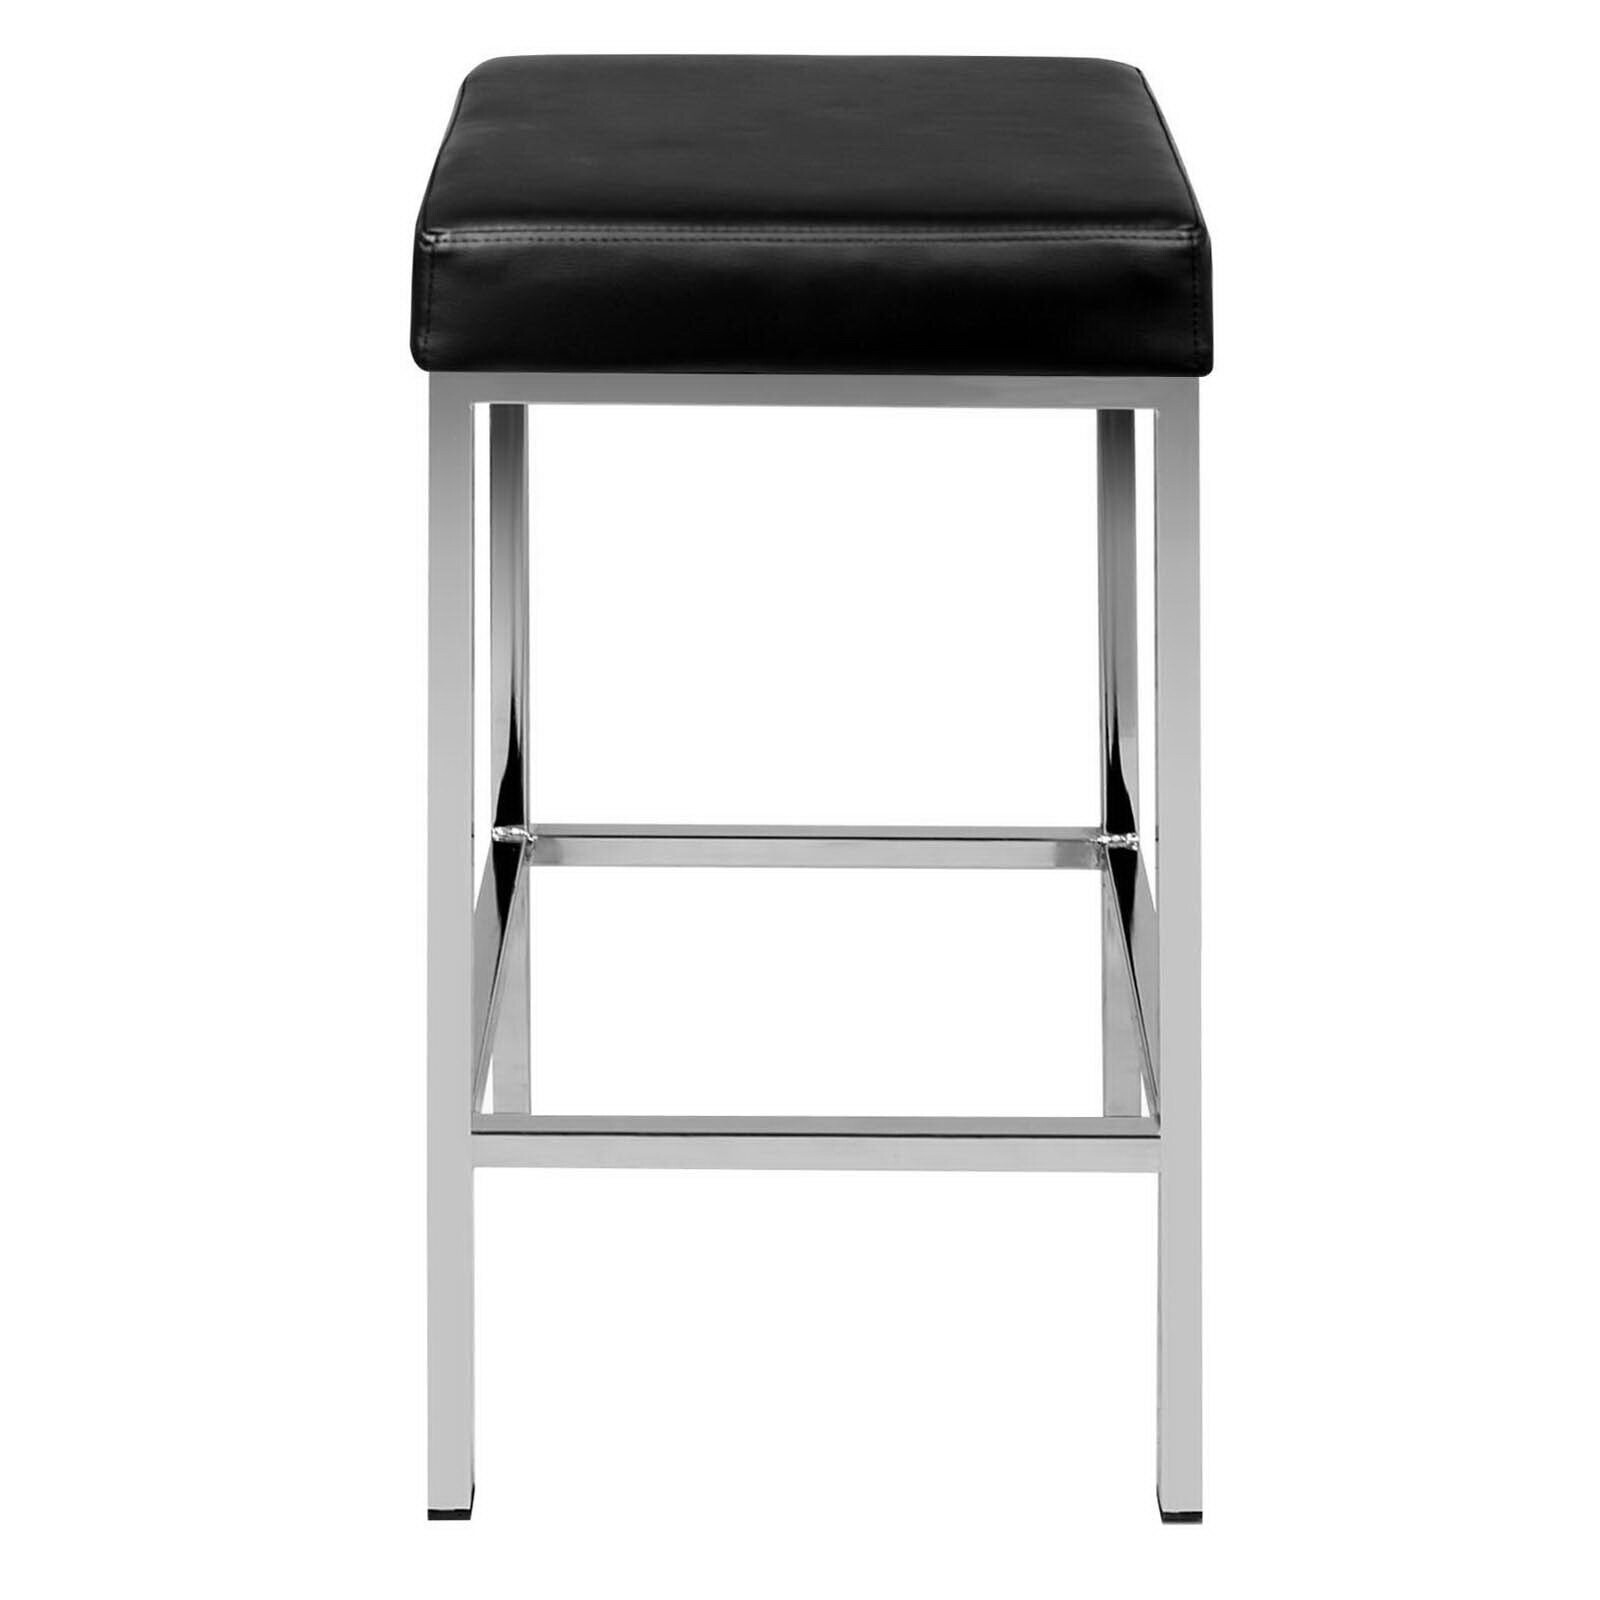 Catalina Faux Leather Bar Stool Set of 2 Black